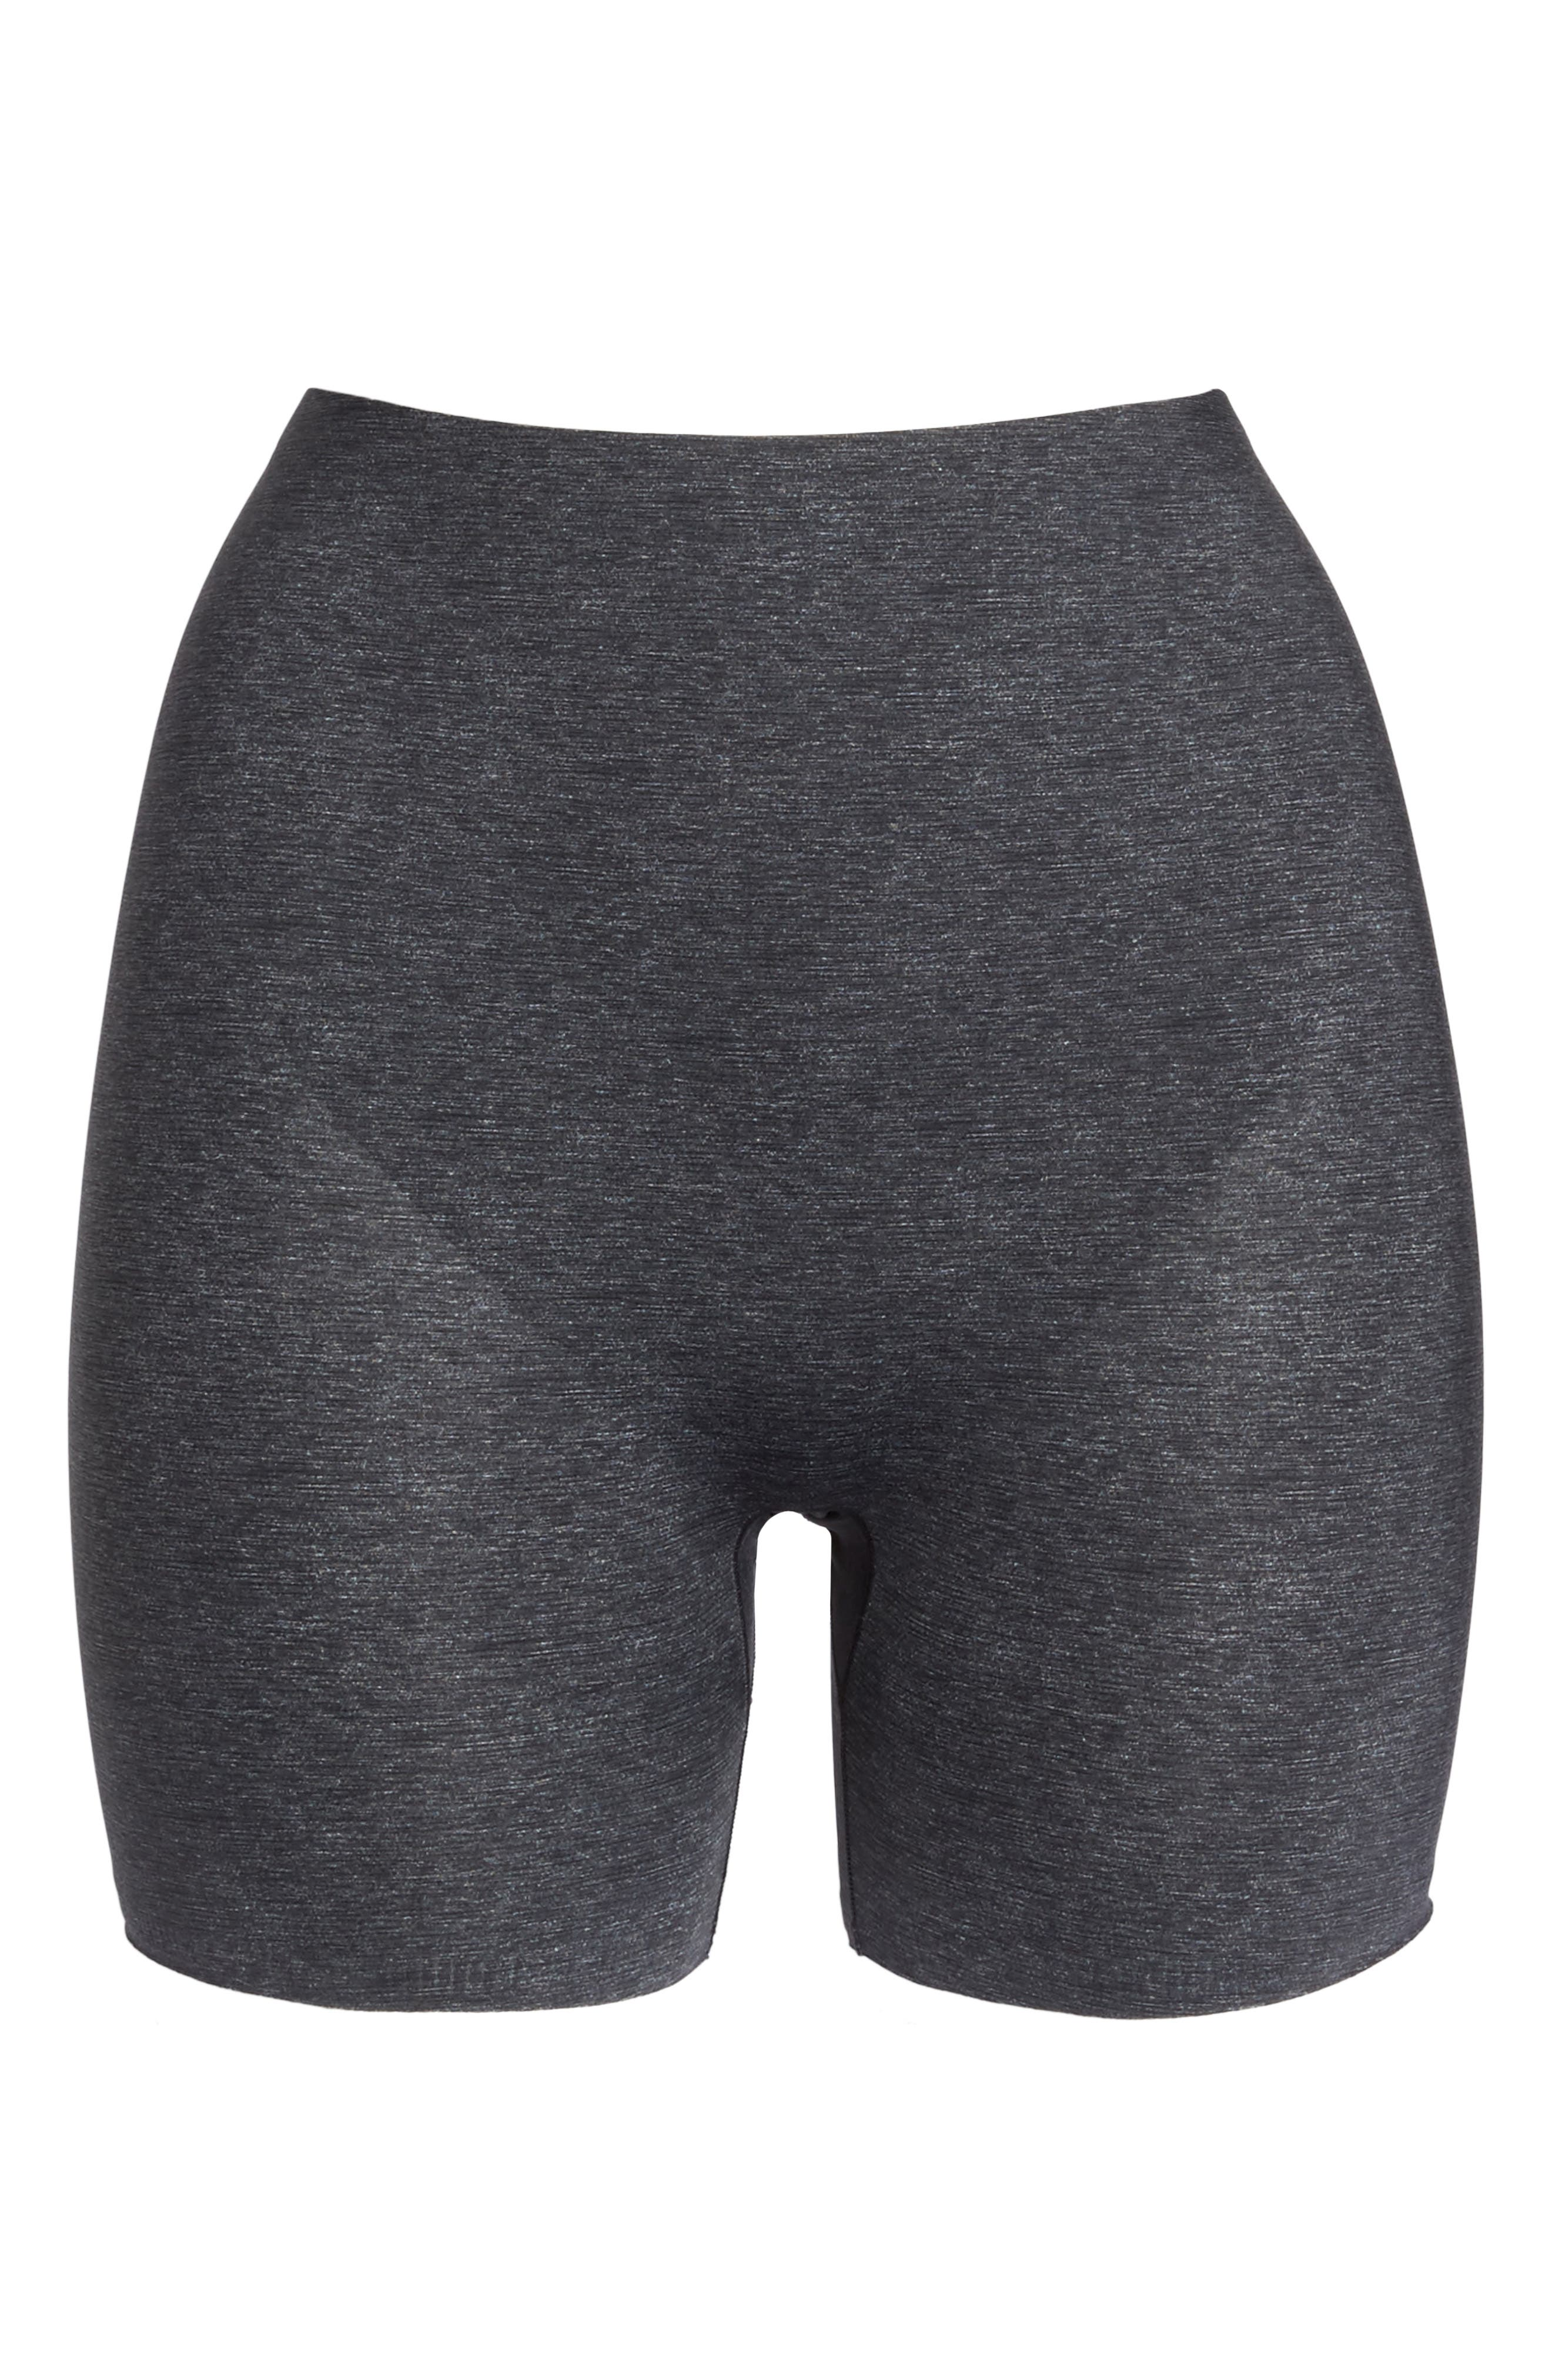 Thinstincts Girl Shorts,                             Alternate thumbnail 4, color,                             Heather Charcoal